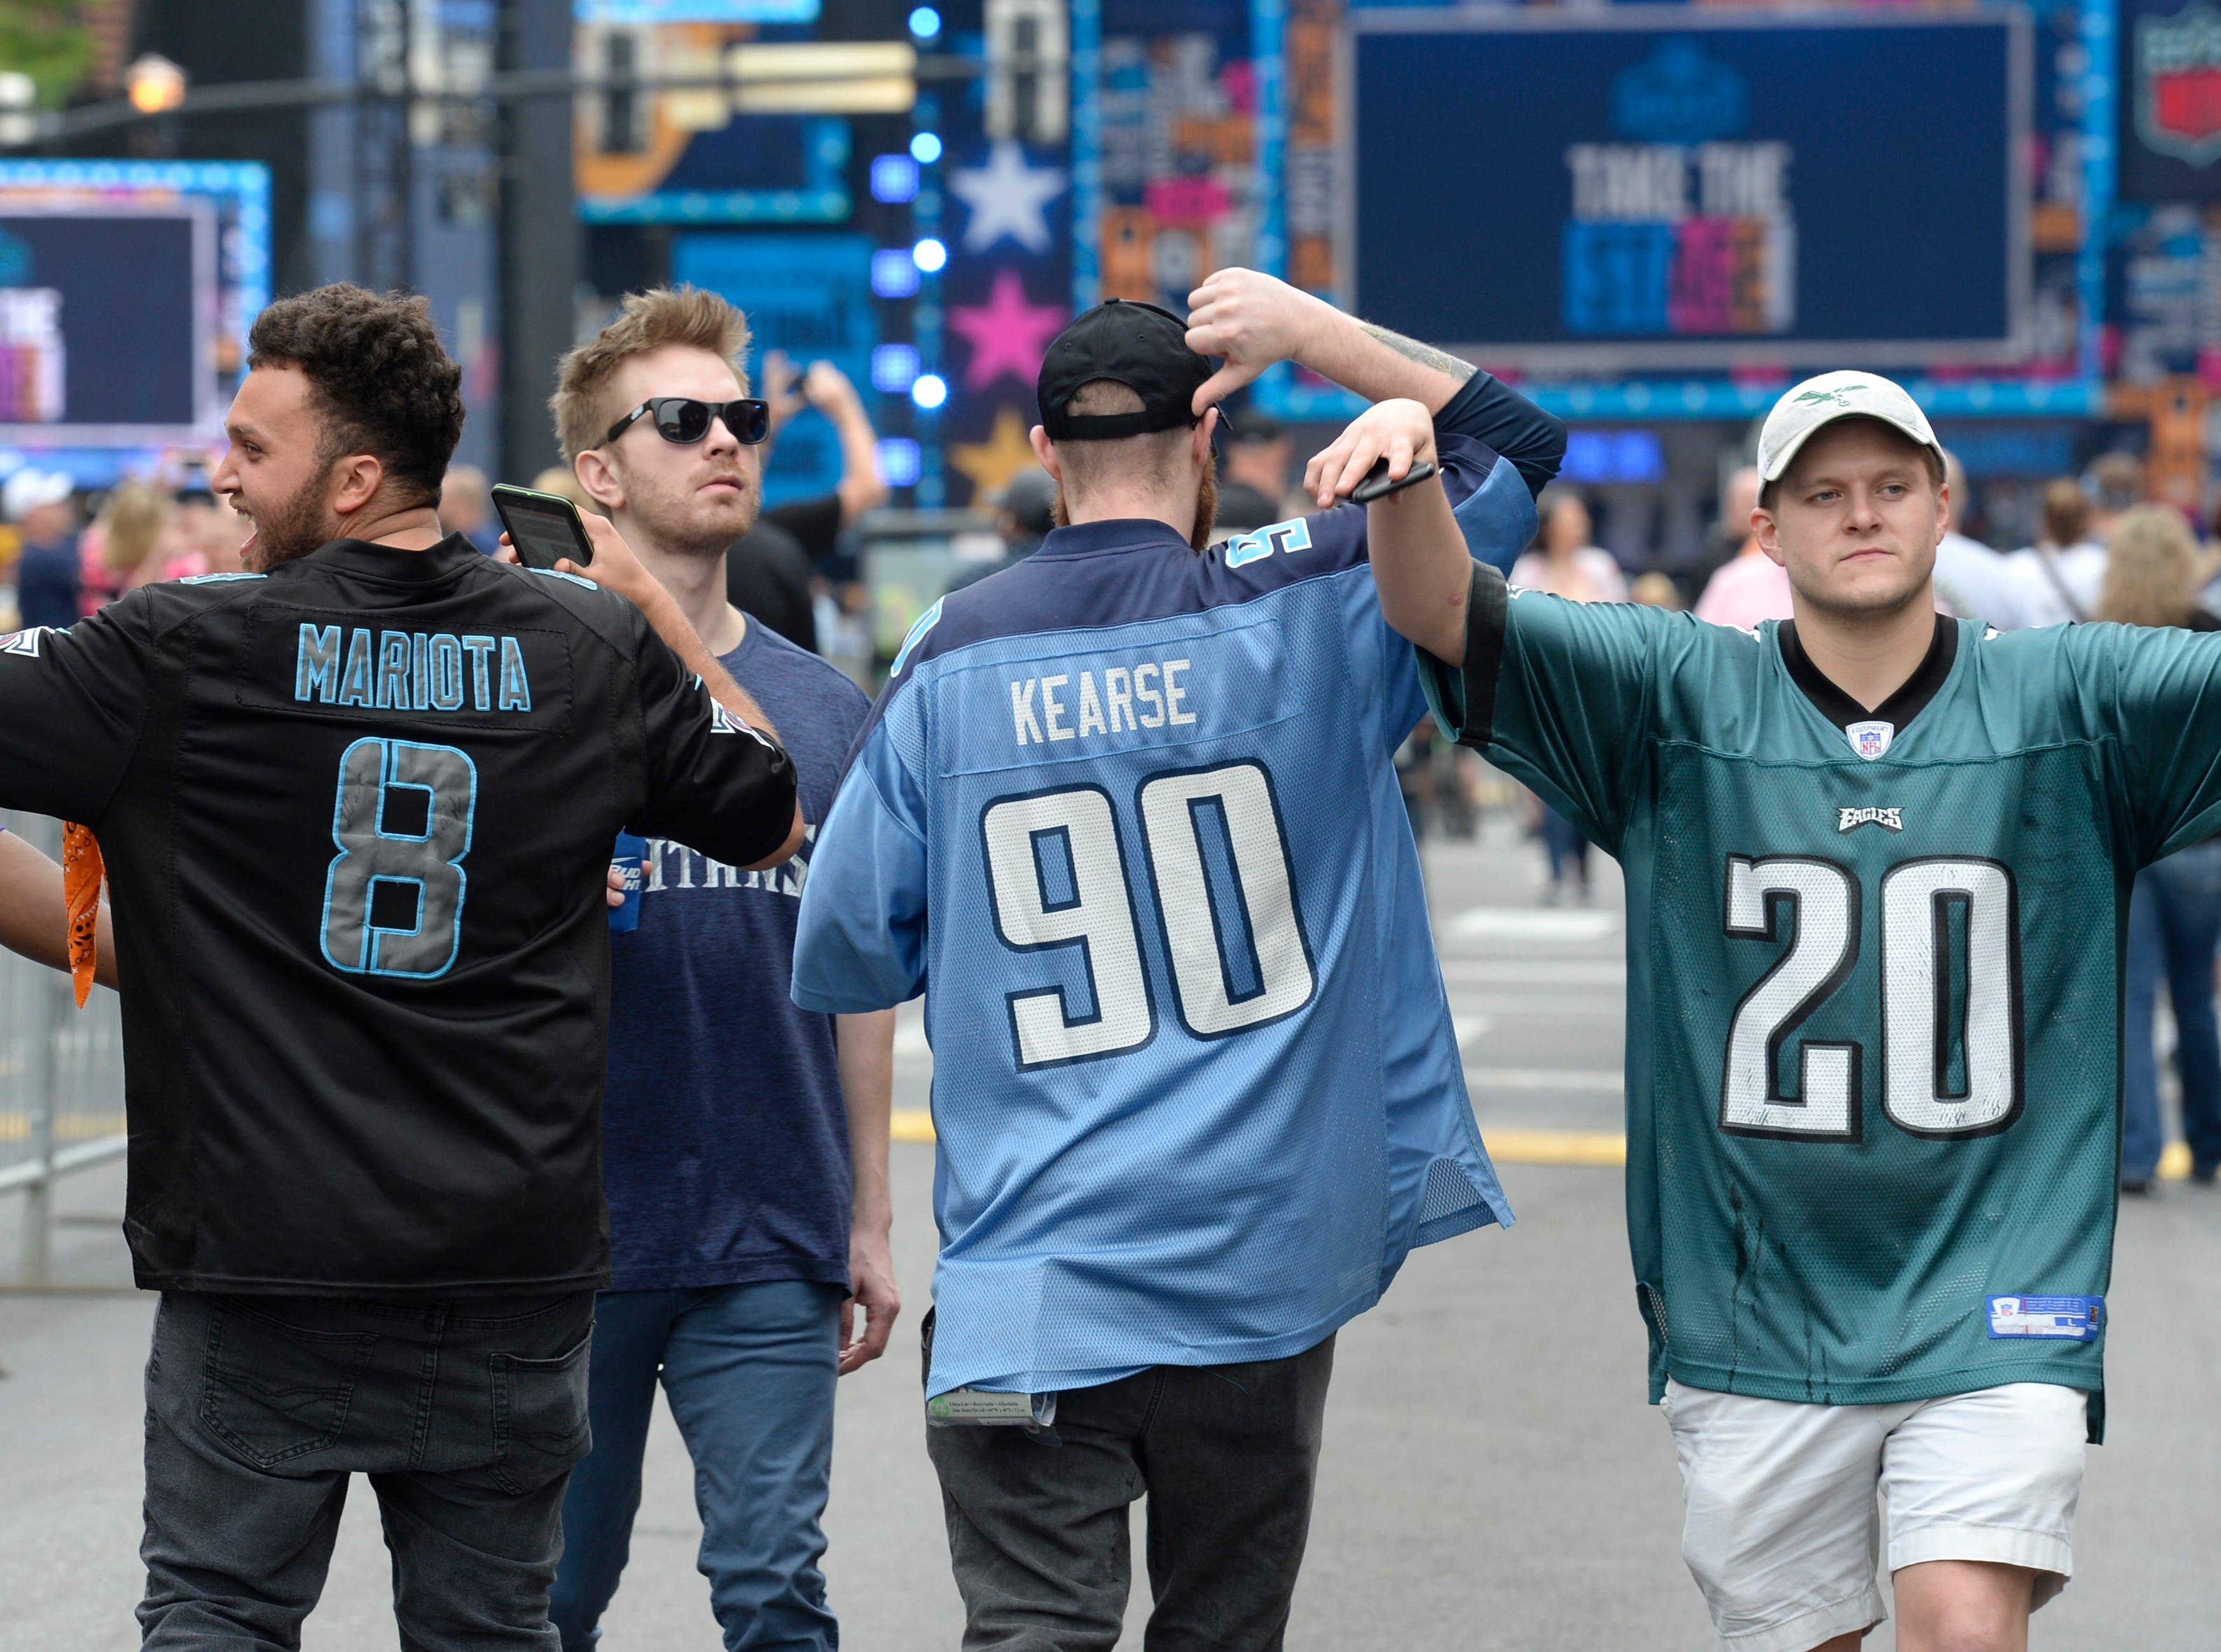 A group of fans show their allegiance before the start of the 2019 NFL Draft on Lower Broadway in Nashville, Tenn., Thursday, April 25, 2019.